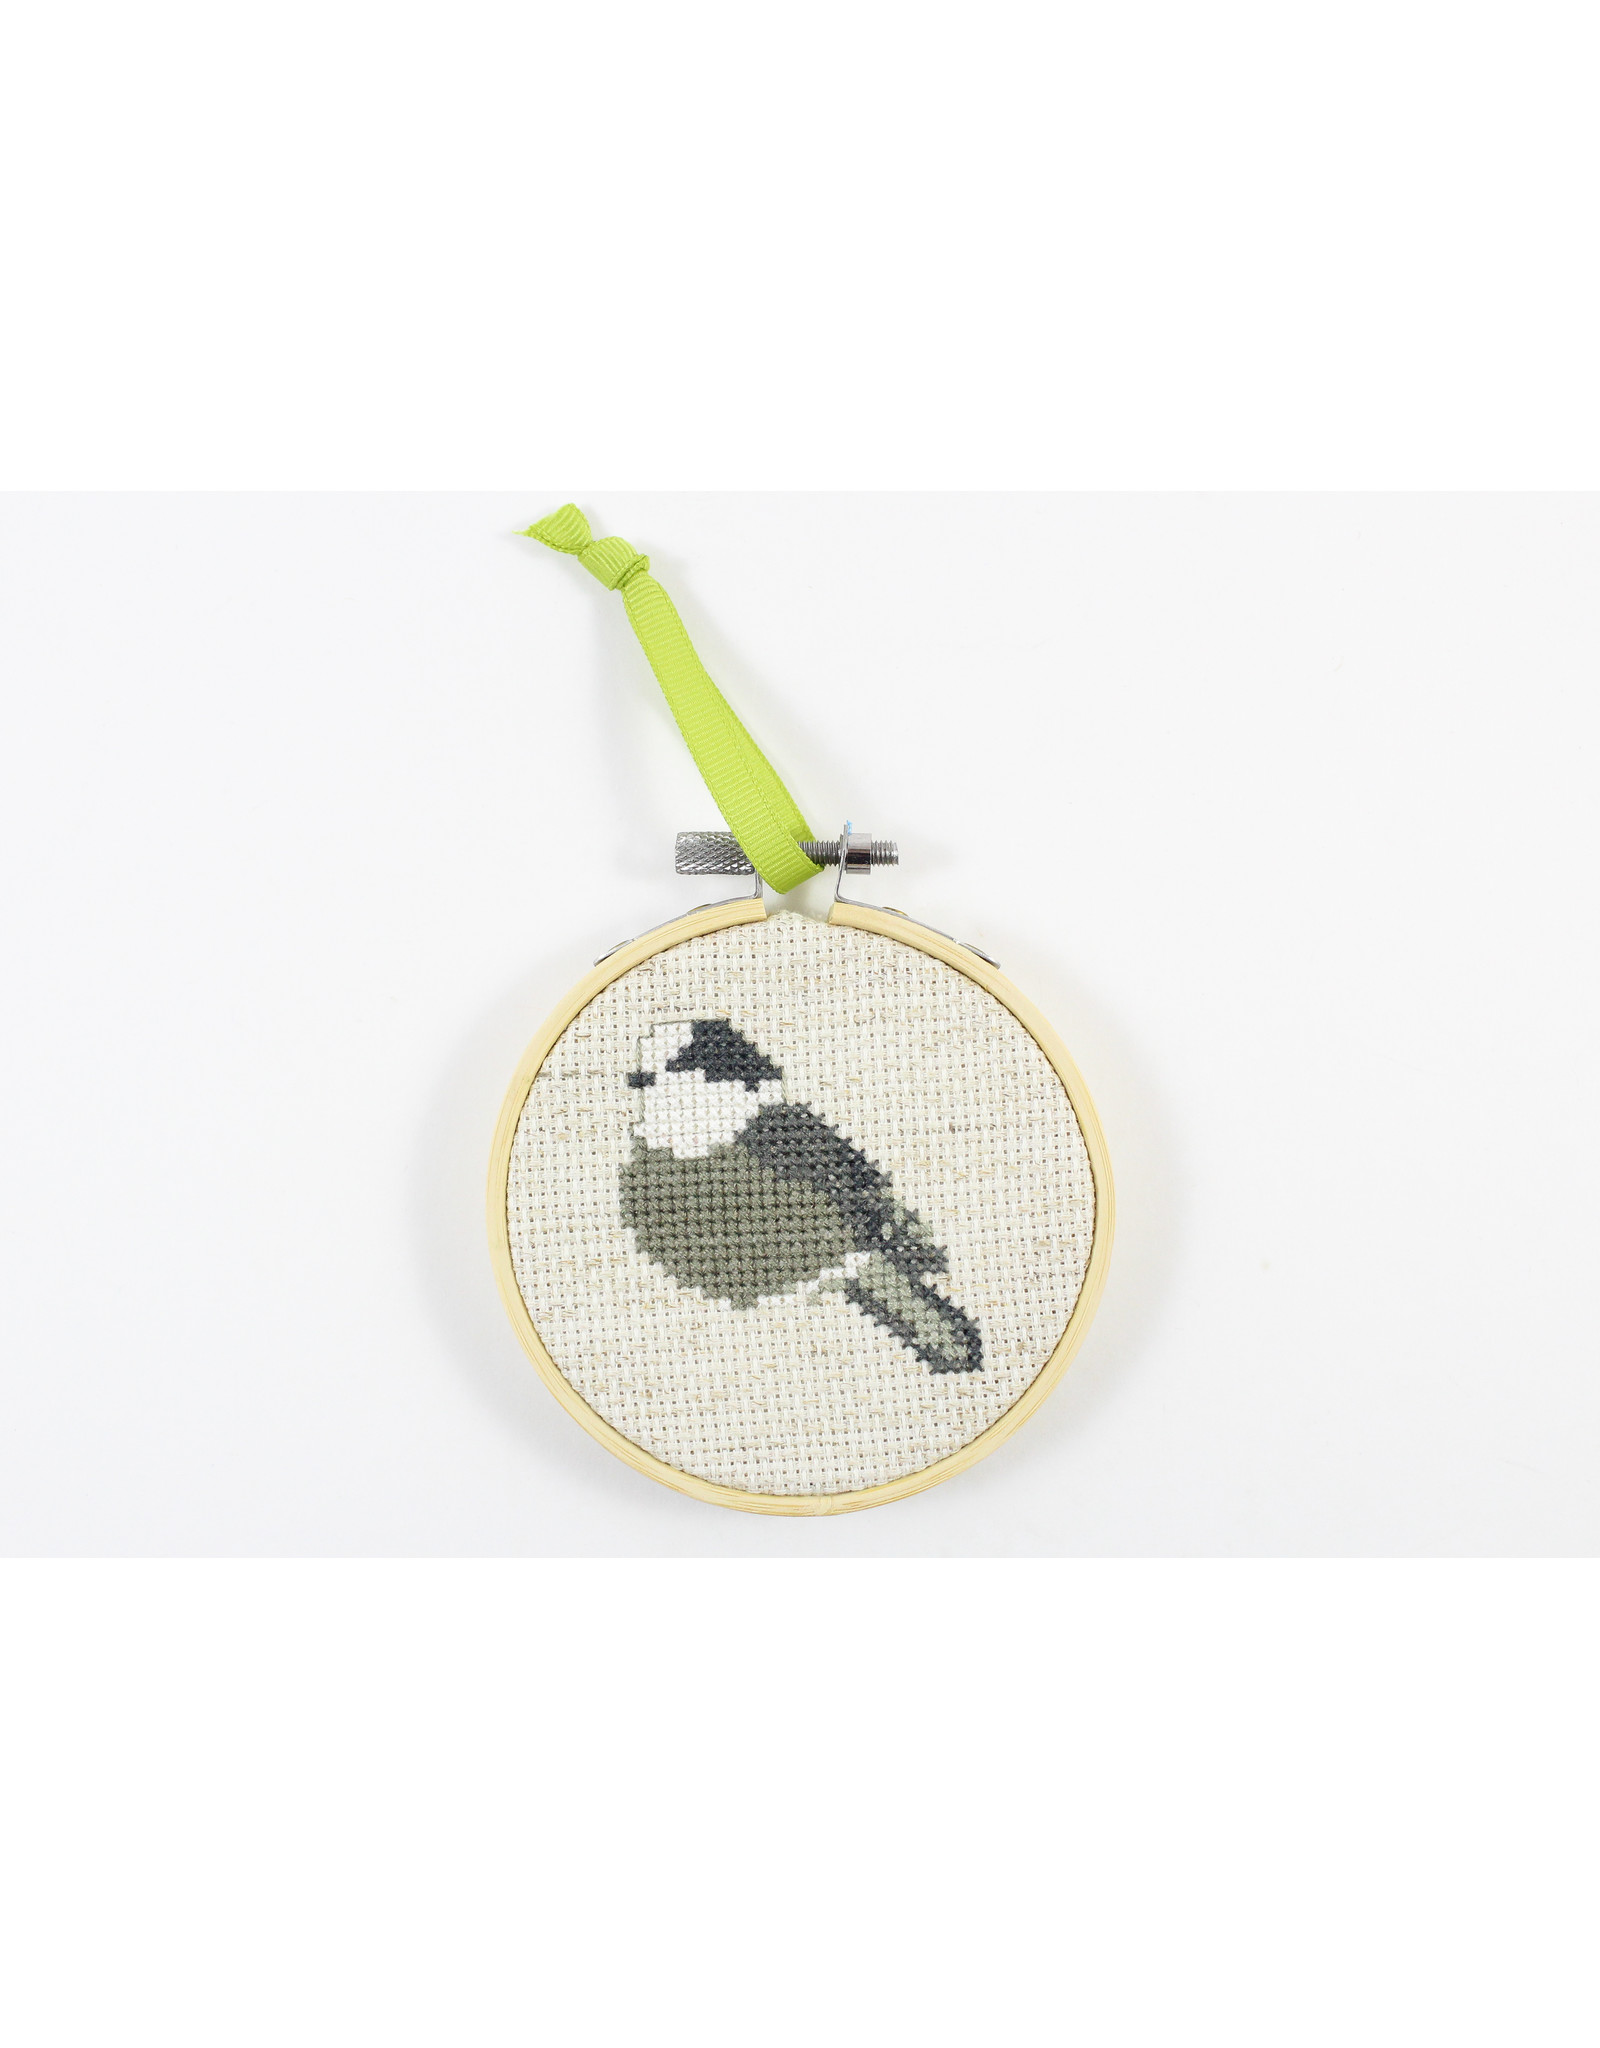 Christina MacLean Cross Stitched Birds by Caper Chris Creations